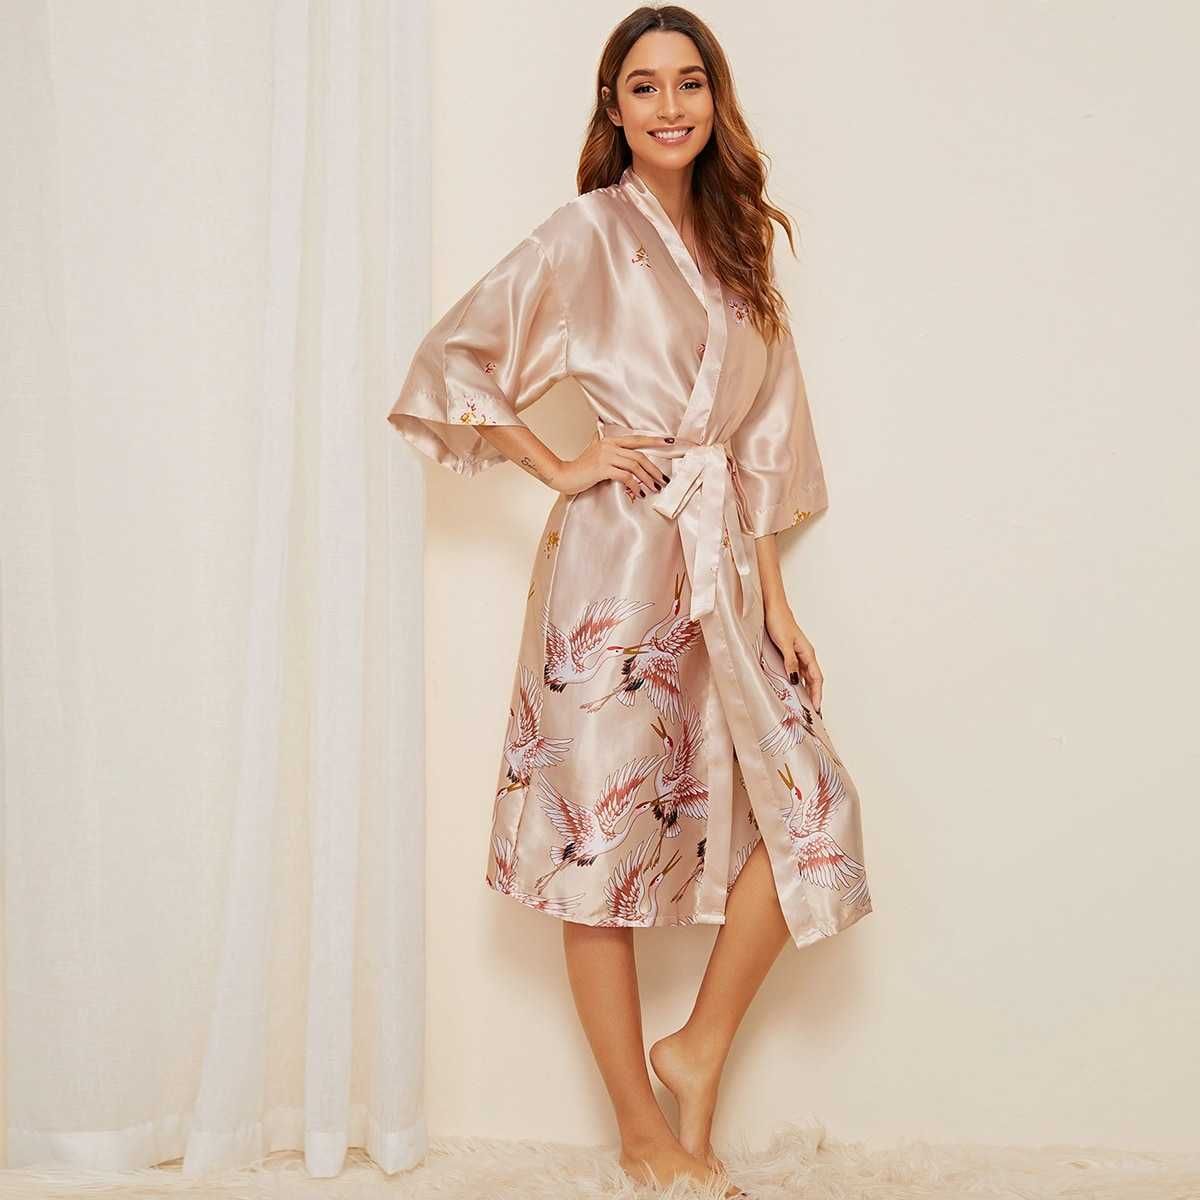 Crane Print Satin Belted Robe in Beige by ROMWE on GOOFASH